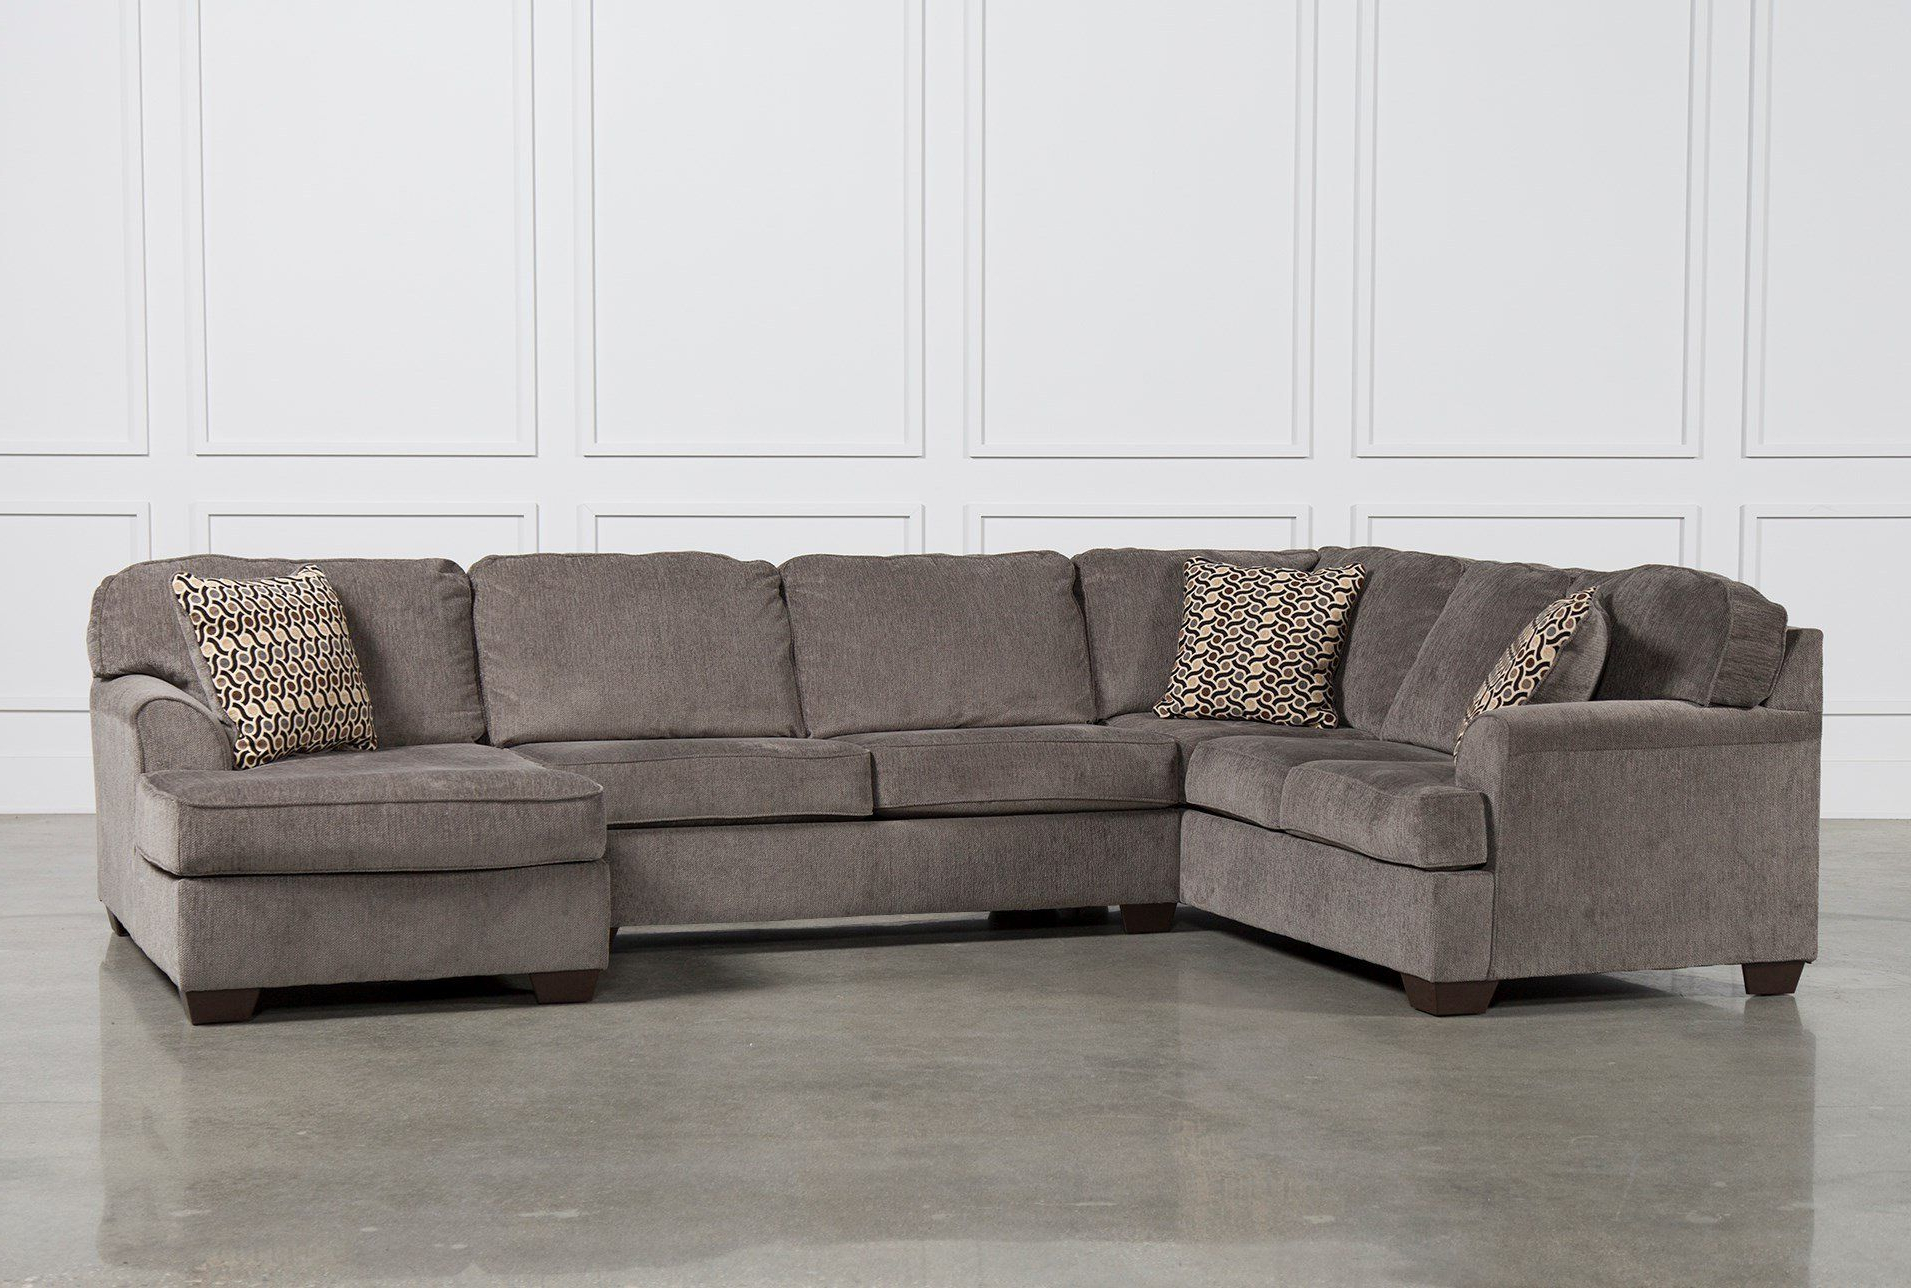 Shop For Loric Smoke 3 Piece Sectional W/raf Chaise At Livingspaces Intended For Trendy Meyer 3 Piece Sectionals With Laf Chaise (View 18 of 20)